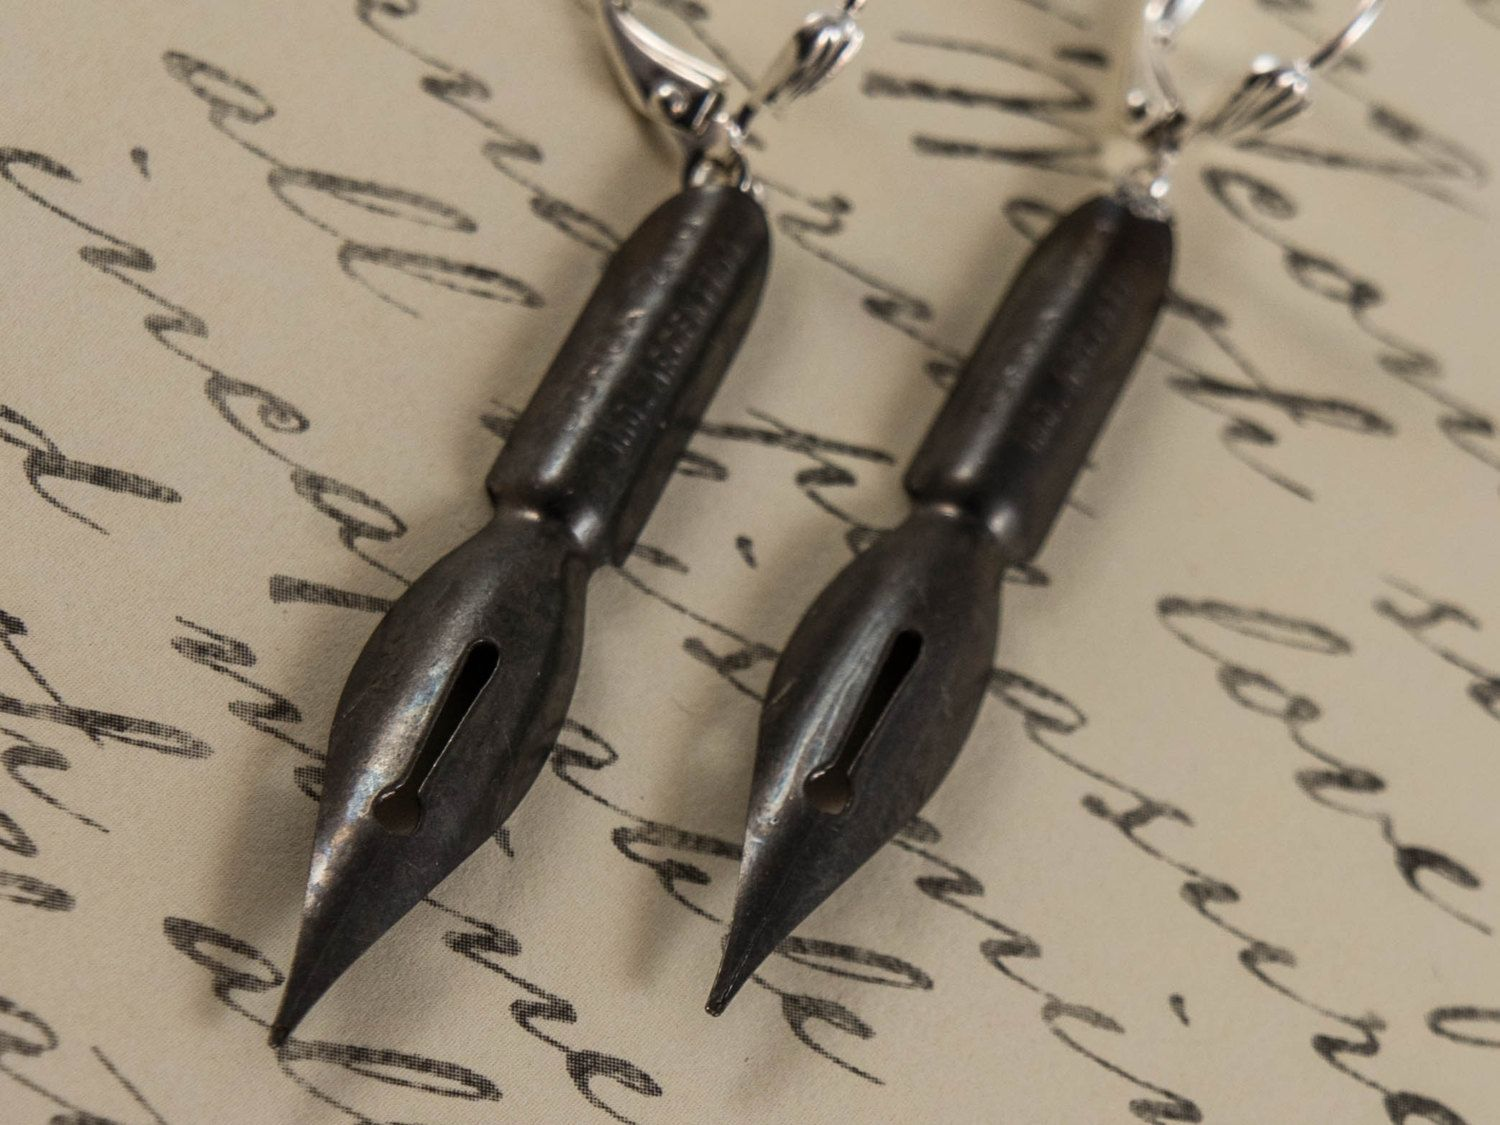 Pen Nib Earrings, Upcycled Steampunk Earrings by PuddinAndPeanuts on Etsy https://www.etsy.com/listing/155566043/pen-nib-earrings-upcycled-steampunk